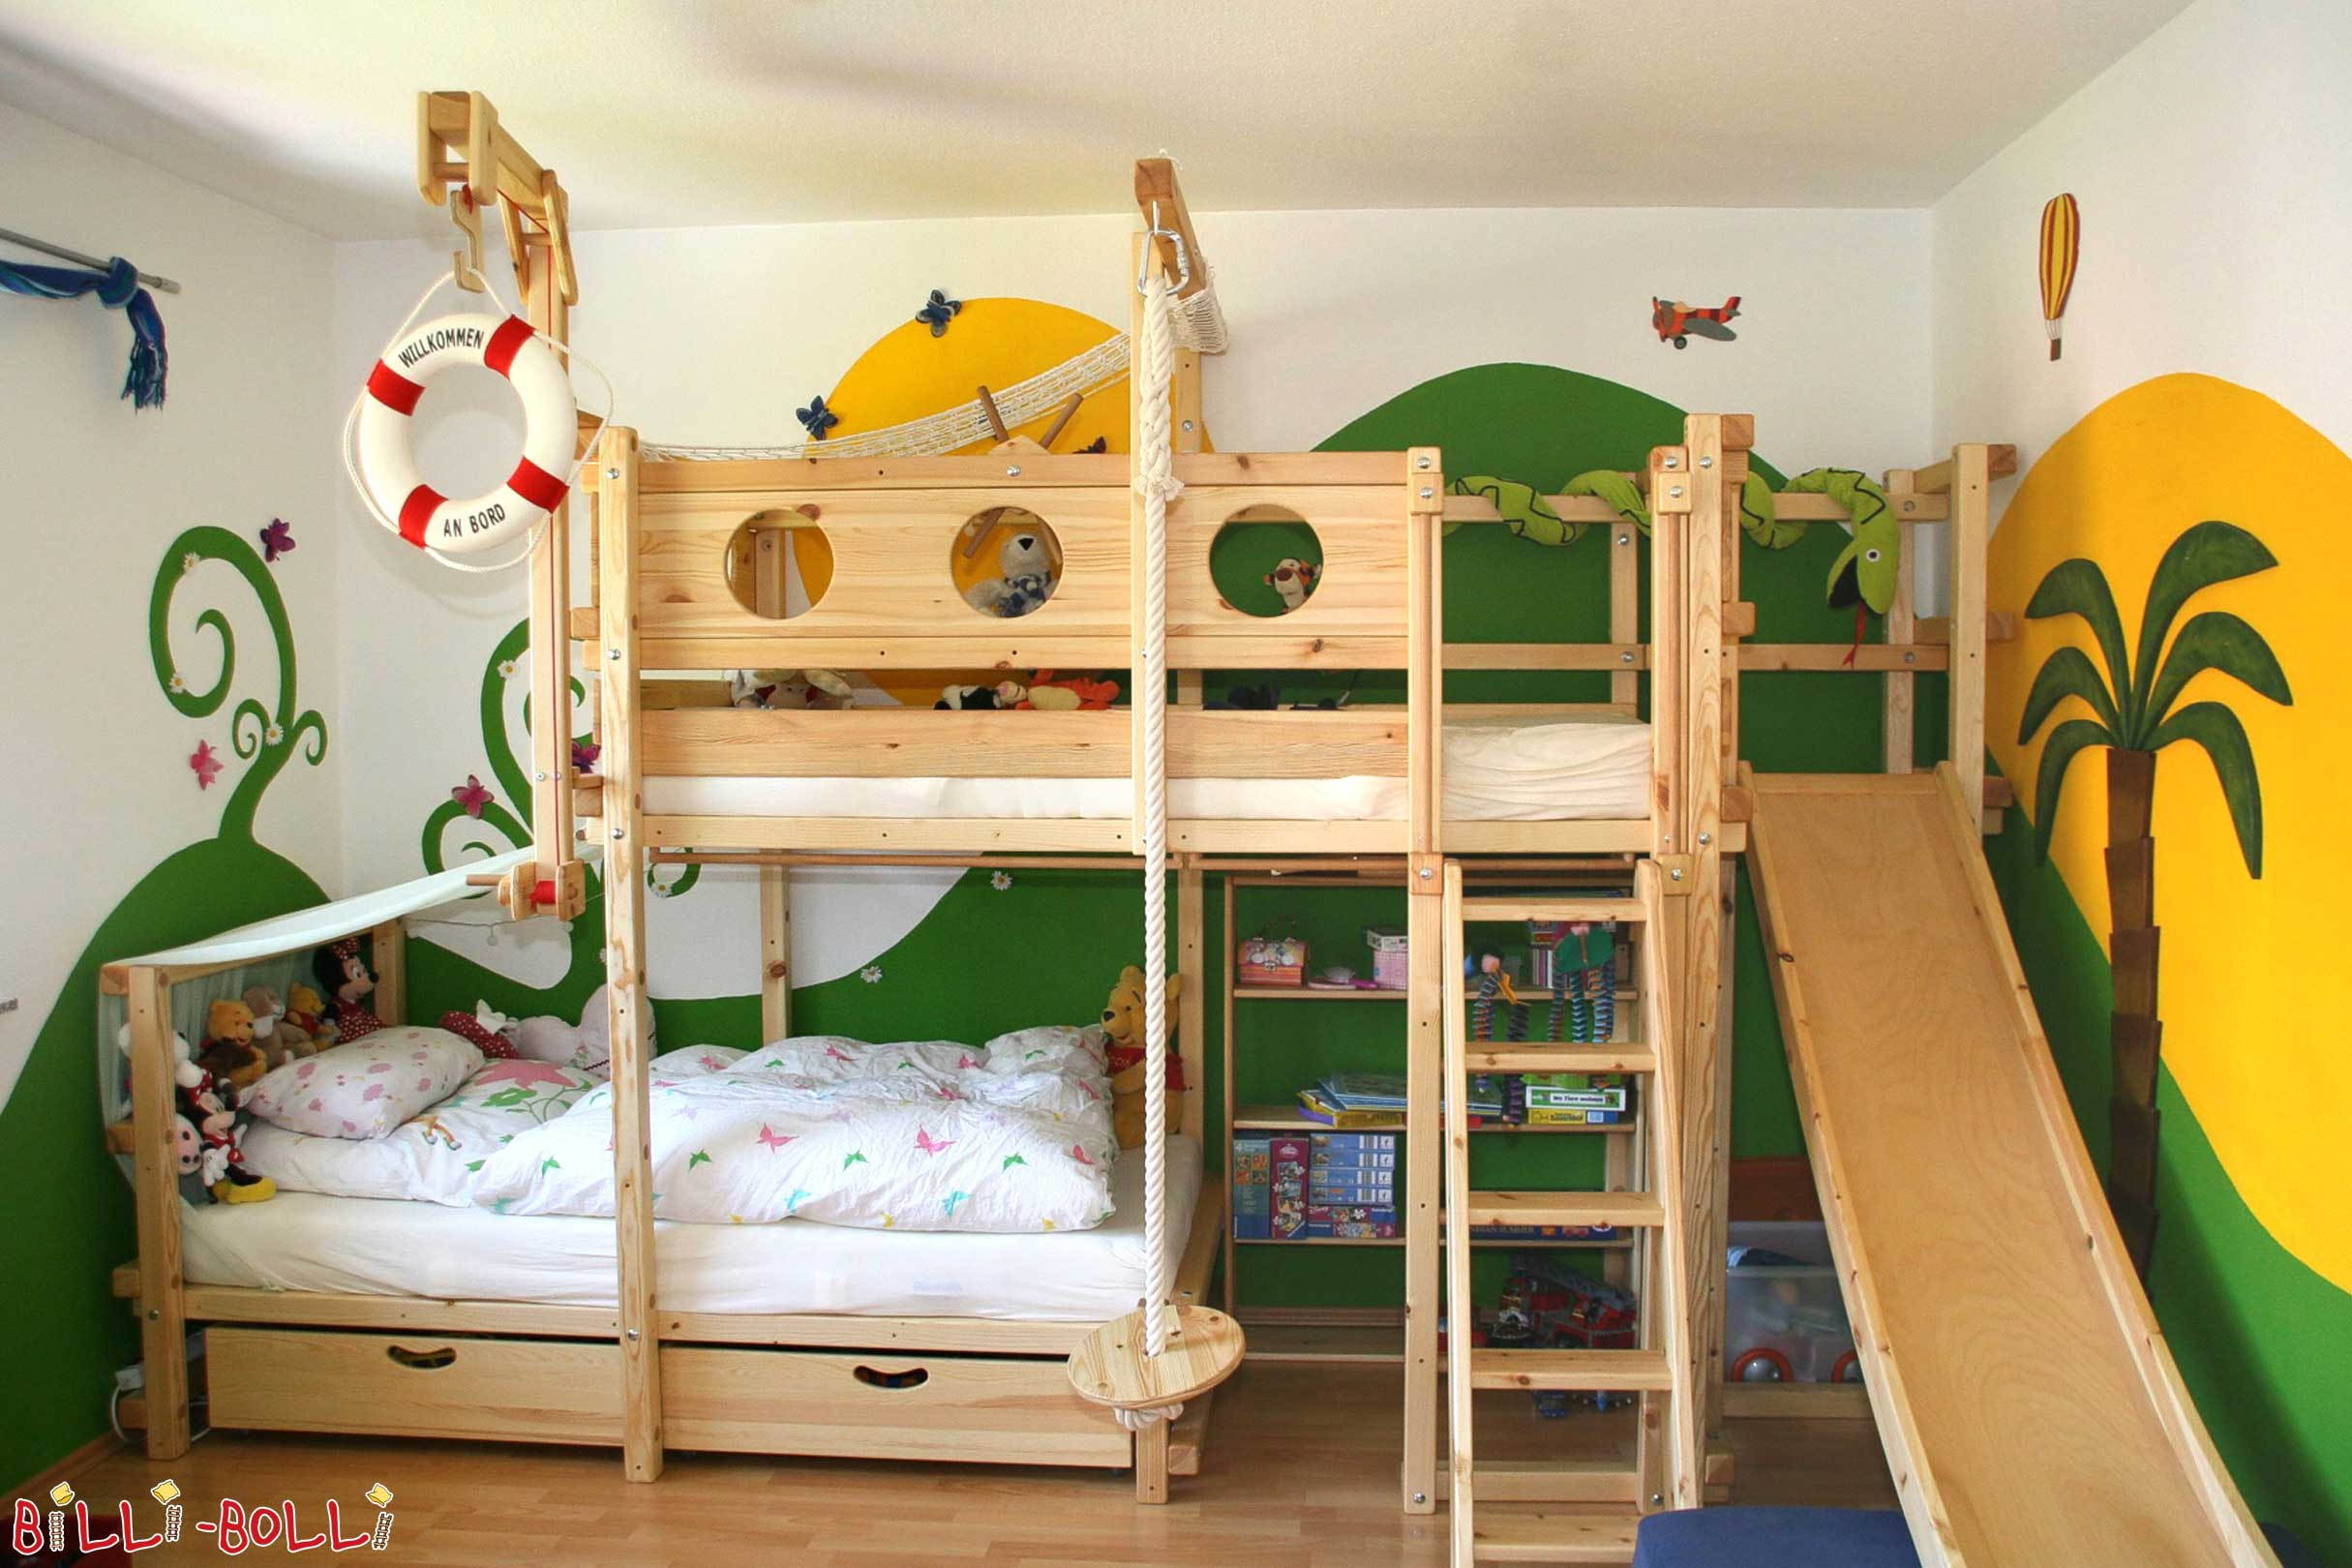 meinungen billi bolli kinderm bel. Black Bedroom Furniture Sets. Home Design Ideas